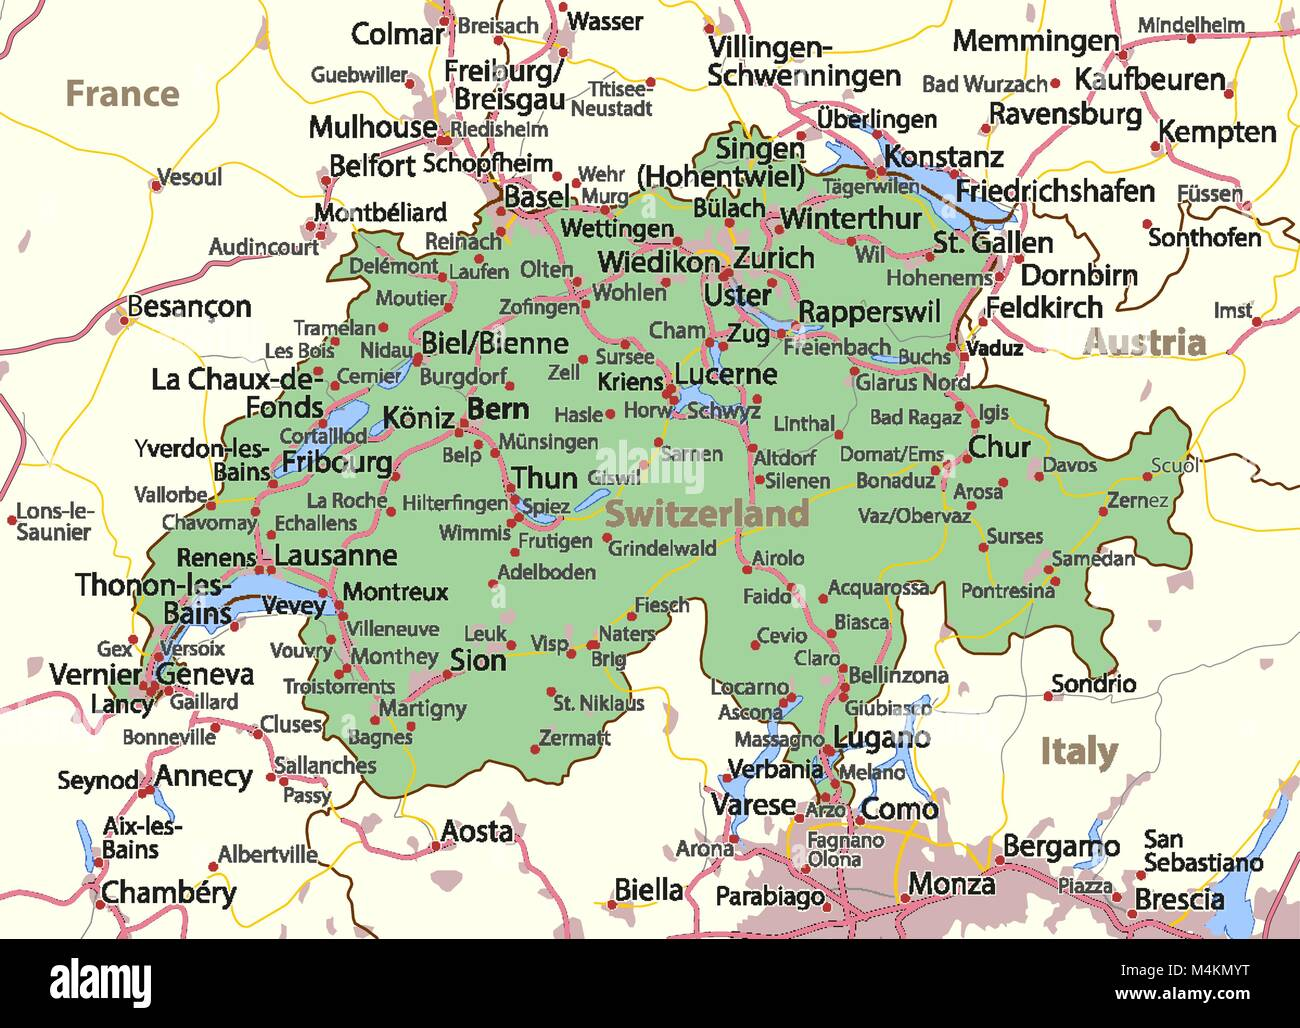 Outline Map Switzerland Stock Photos & Outline Map Switzerland Stock ...